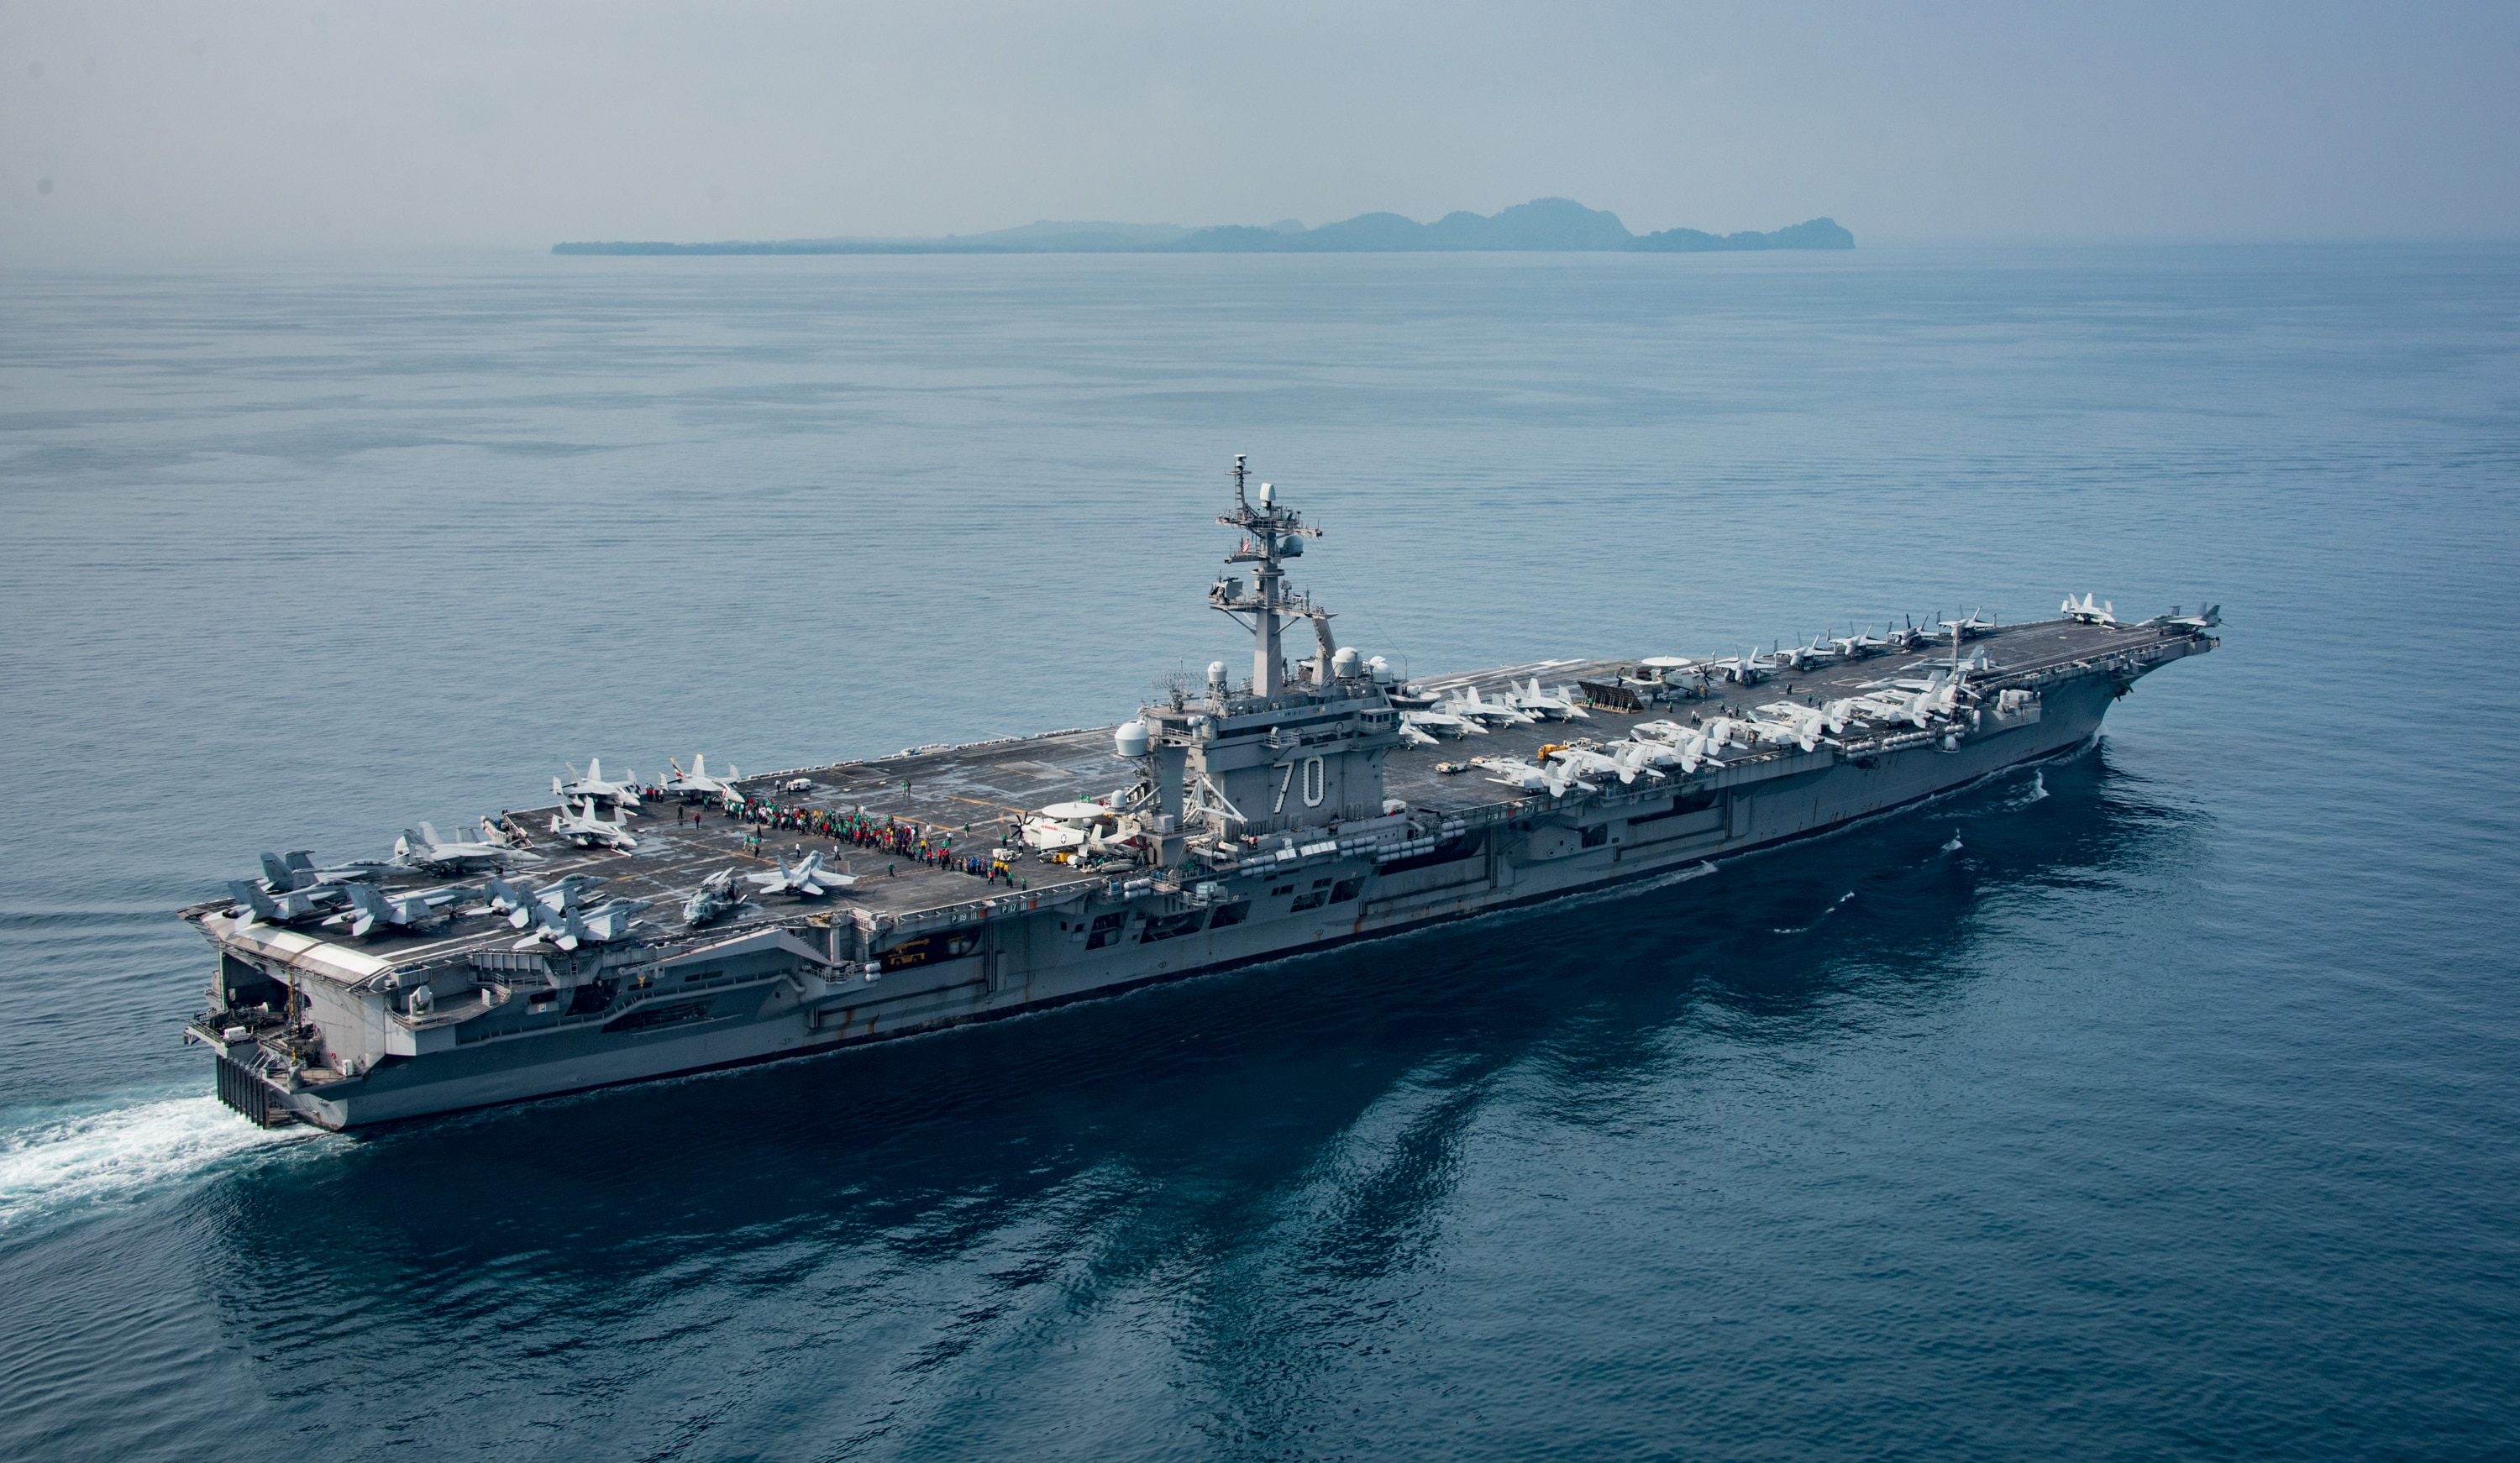 Nothing to see here: US carrier still thousands of miles from Korea